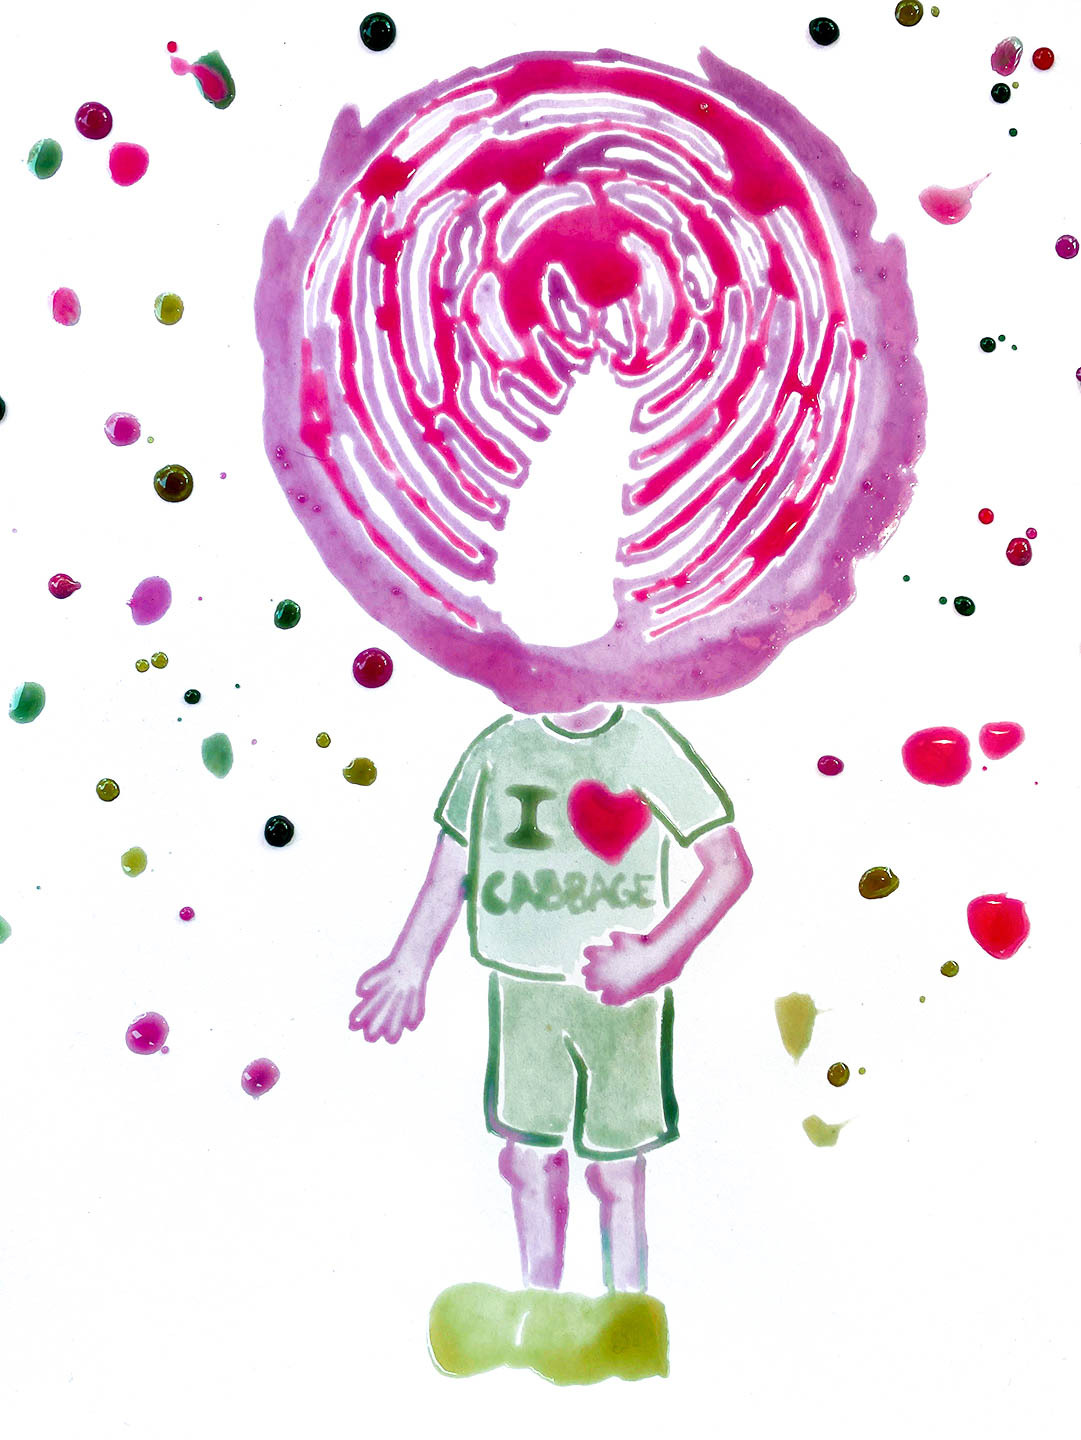 Watercolor of child with a cabbage for a head